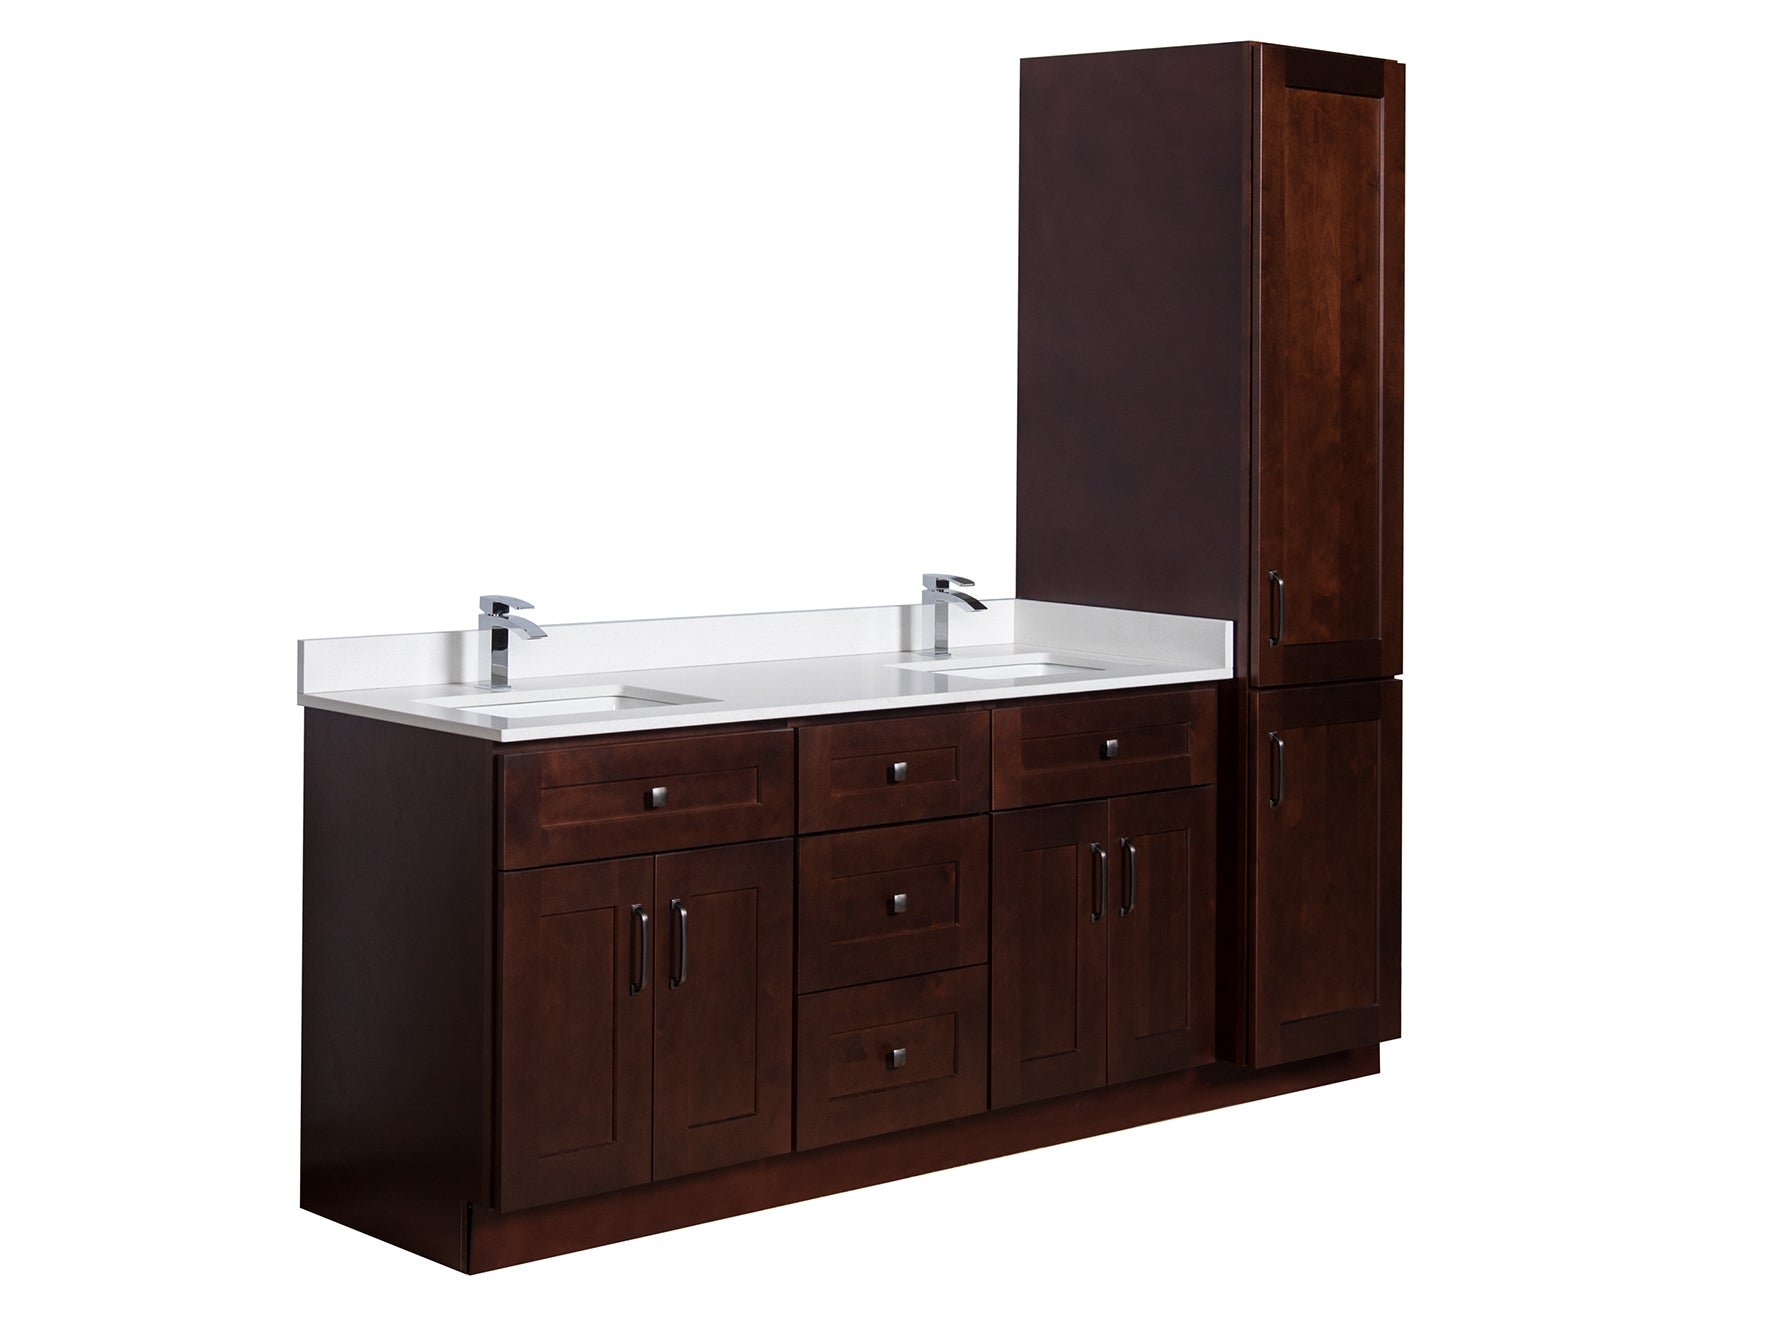 Double sink bathroom cabinet with storage tower